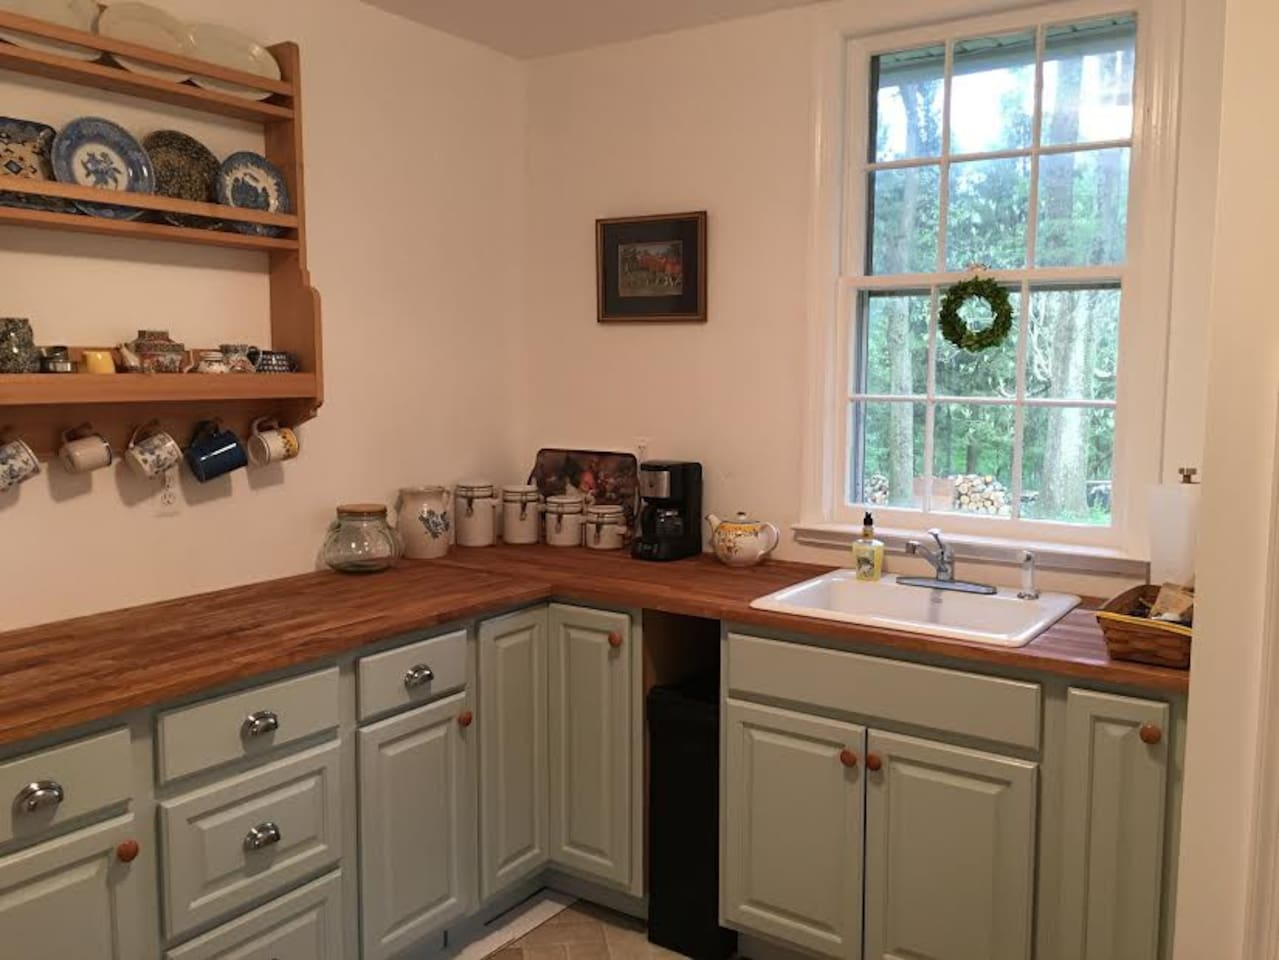 Bright airy kitchen - microwave, coffee maker electric skillet and toaster